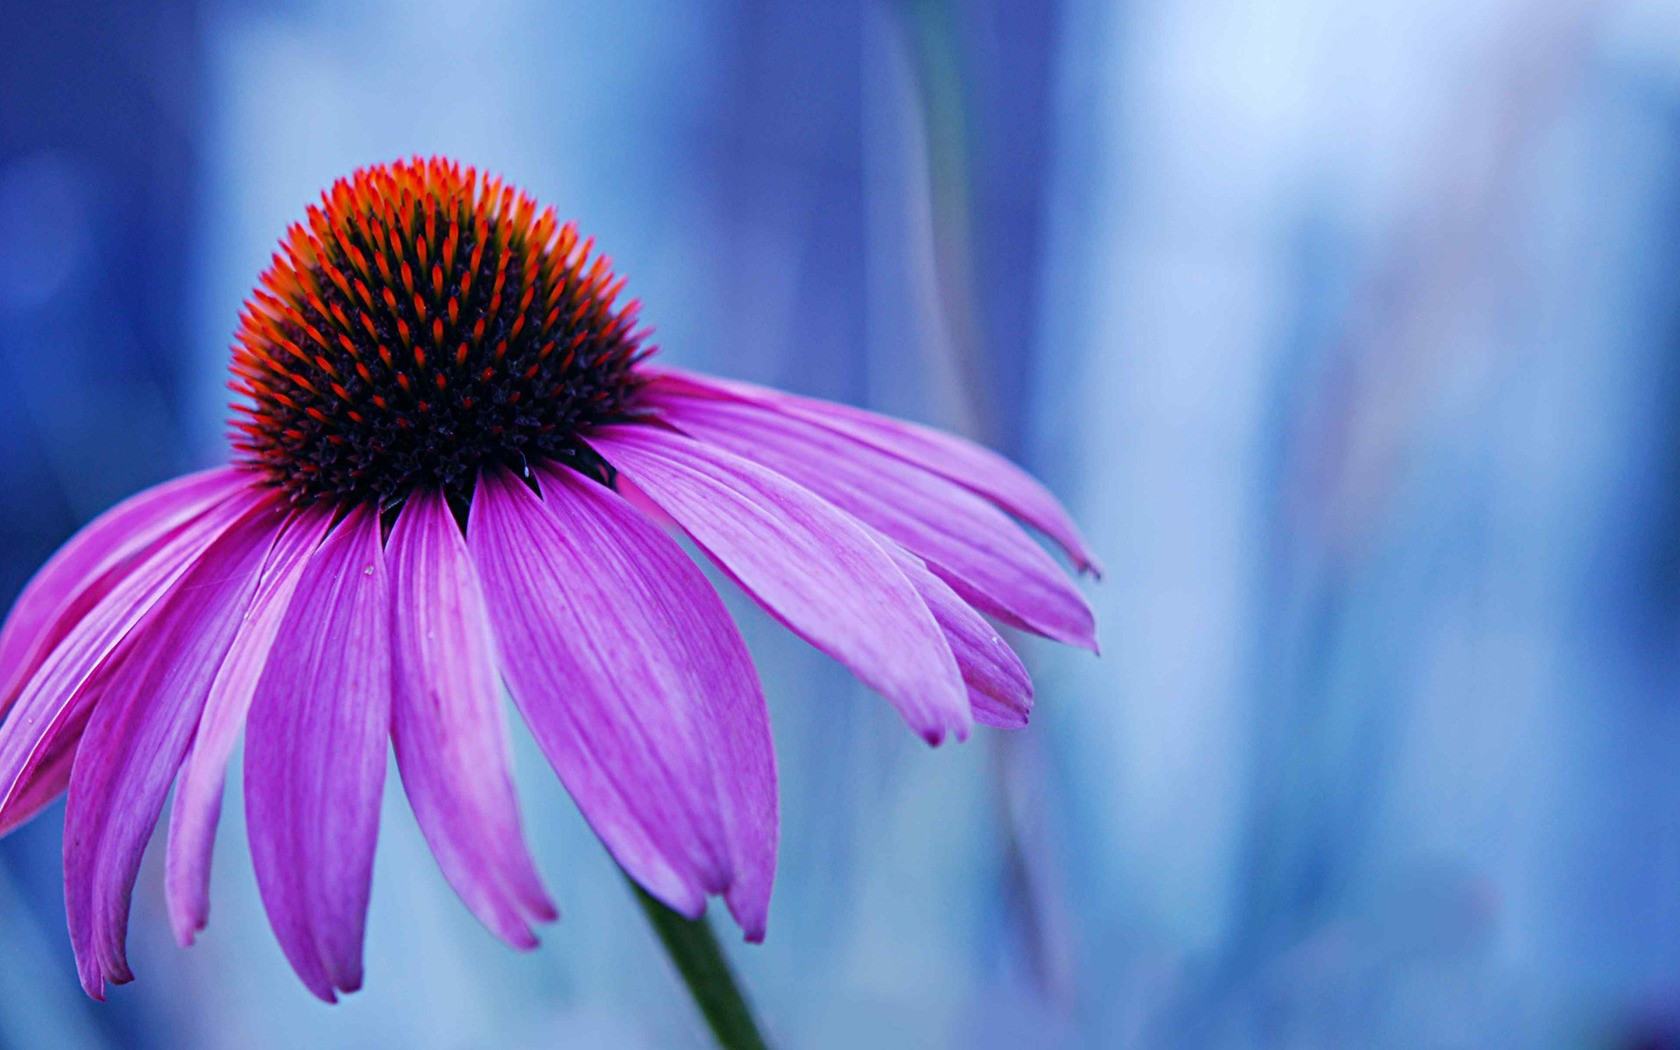 Amazing Macro Flowers Wallpaper